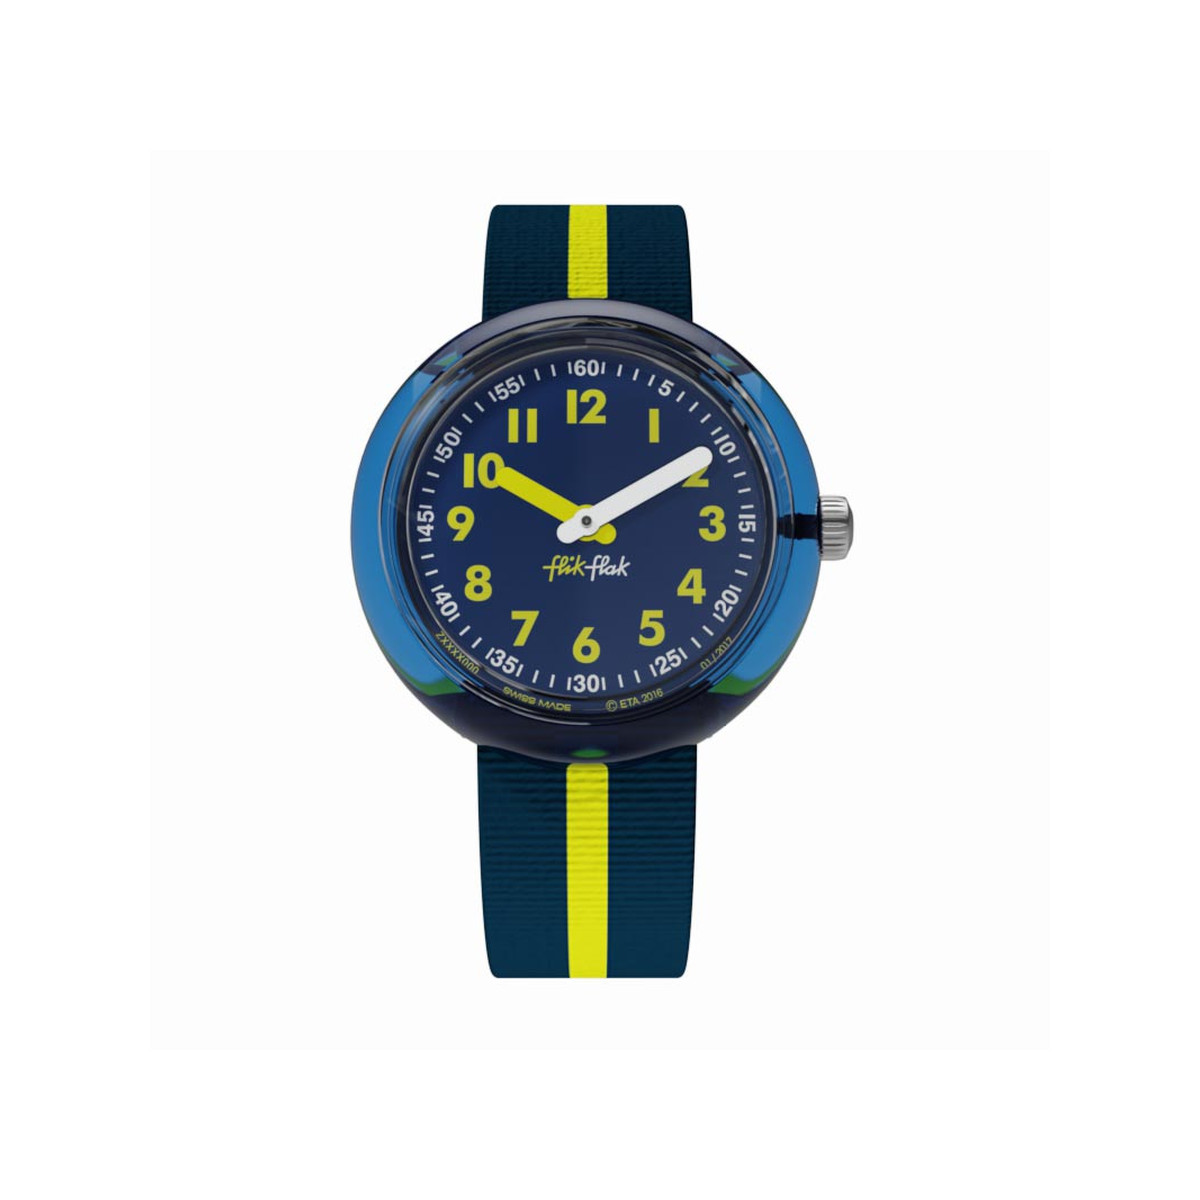 Montre Flik FLak mixte Block Yellow bleu jaune